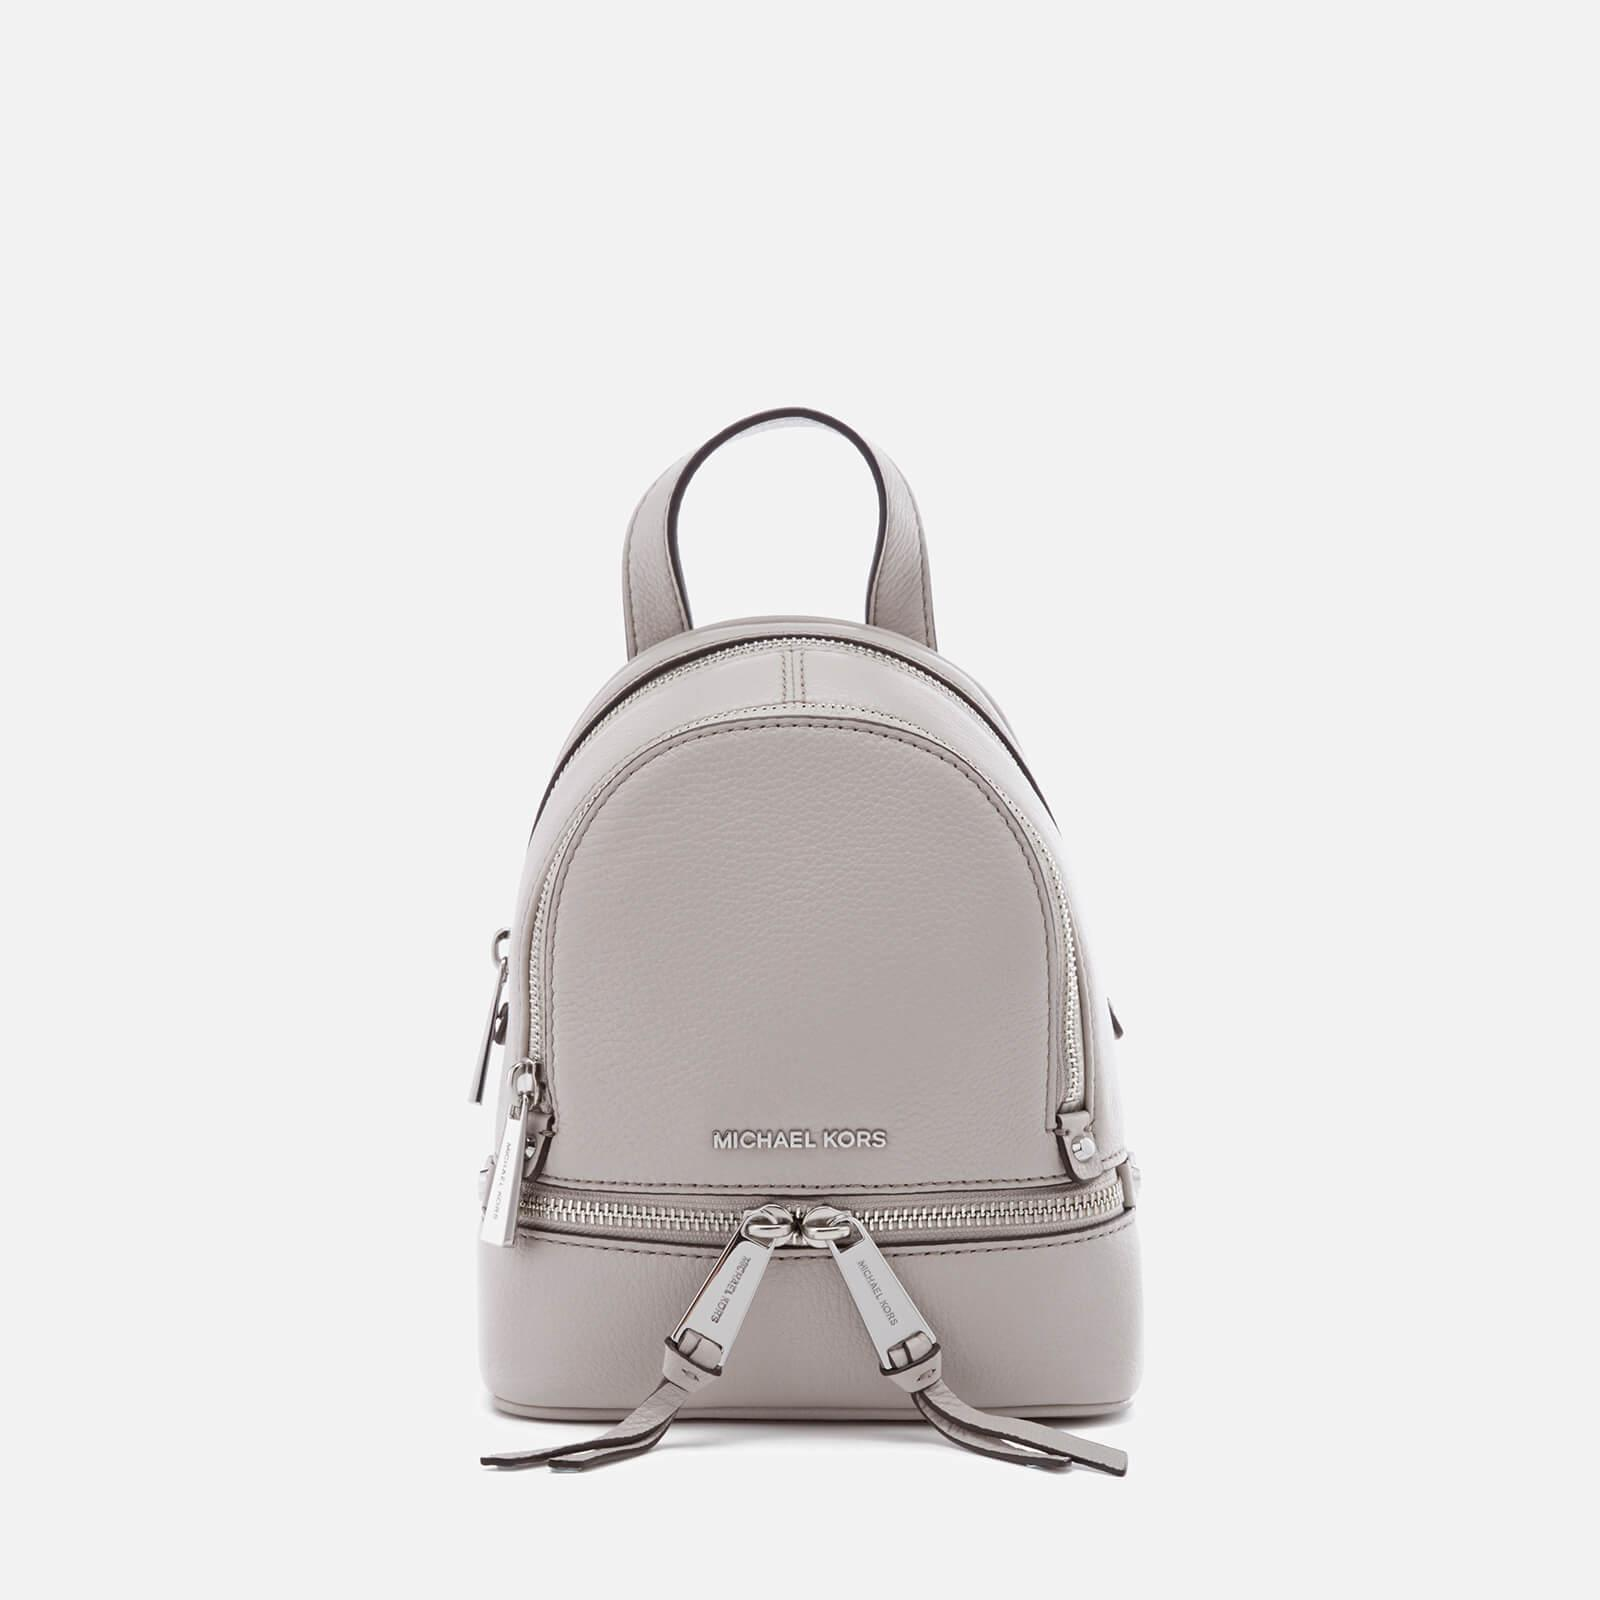 995189cd48fc Gallery. Previously sold at: MyBag · Women's Michael By Michael Kors Rhea  ...